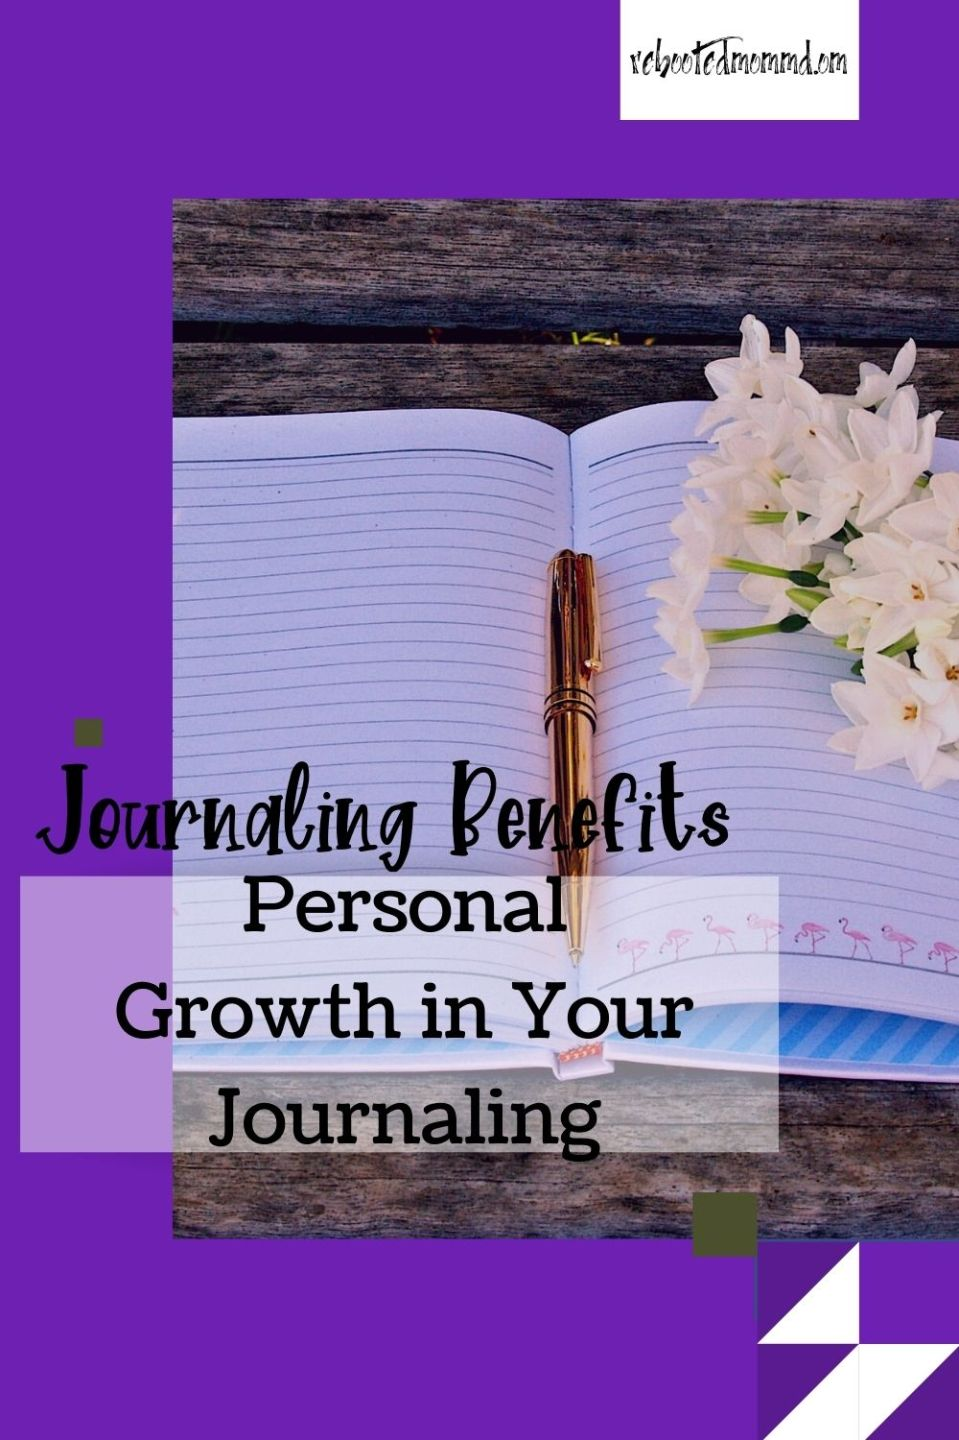 Personal Growth Questions to Help as You Journal